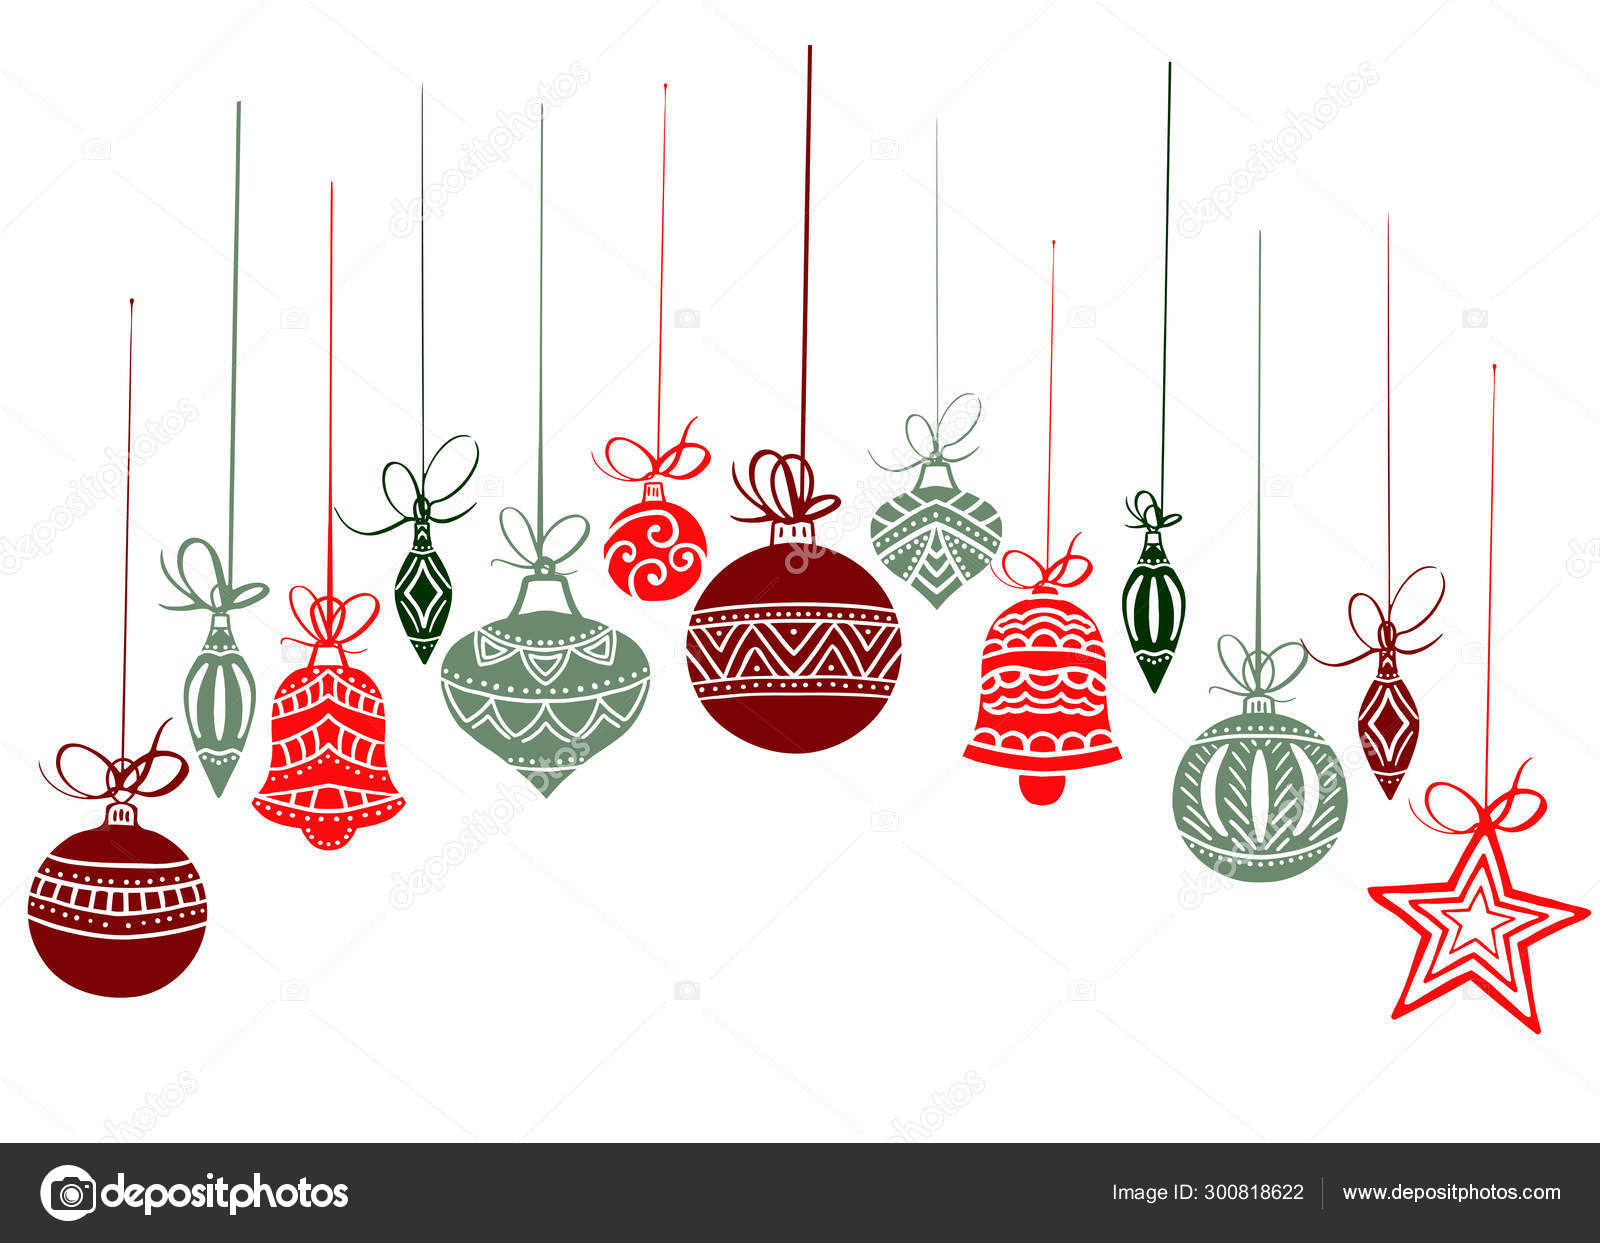 Christmas Decorations Sketch Drawing For Your Design